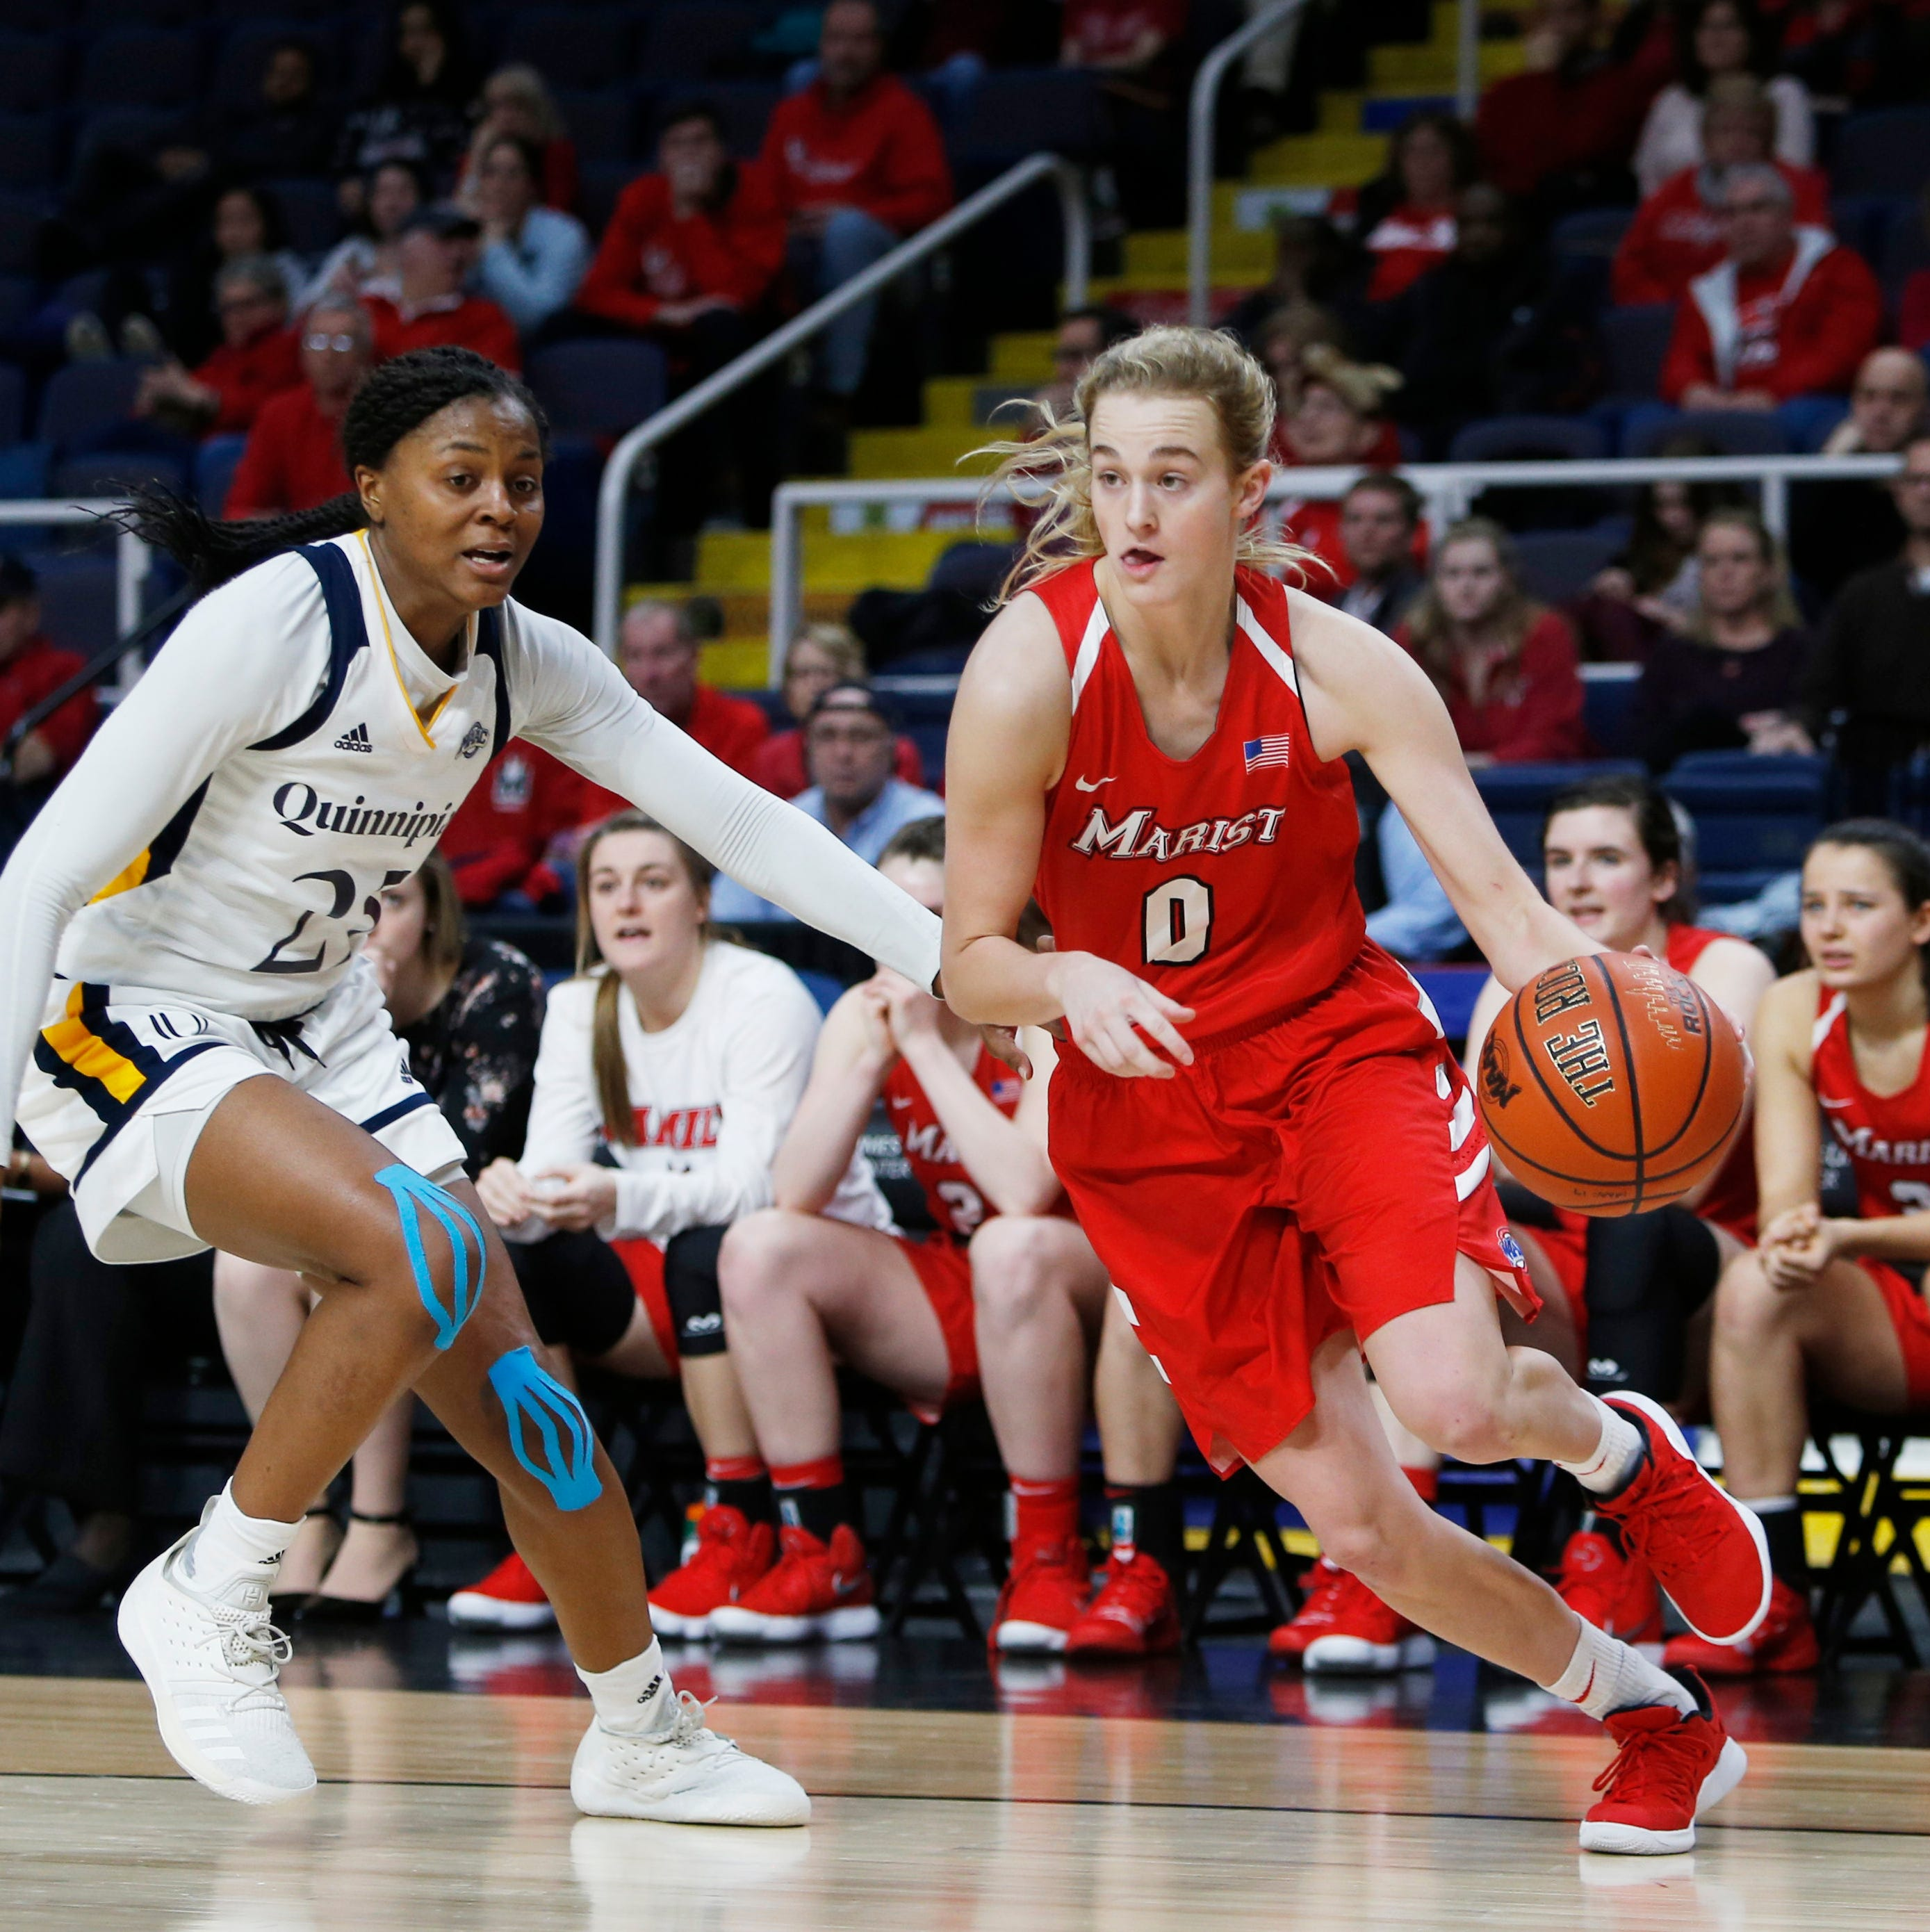 Throne open: Marist women eye MAAC success, return to title glory next year